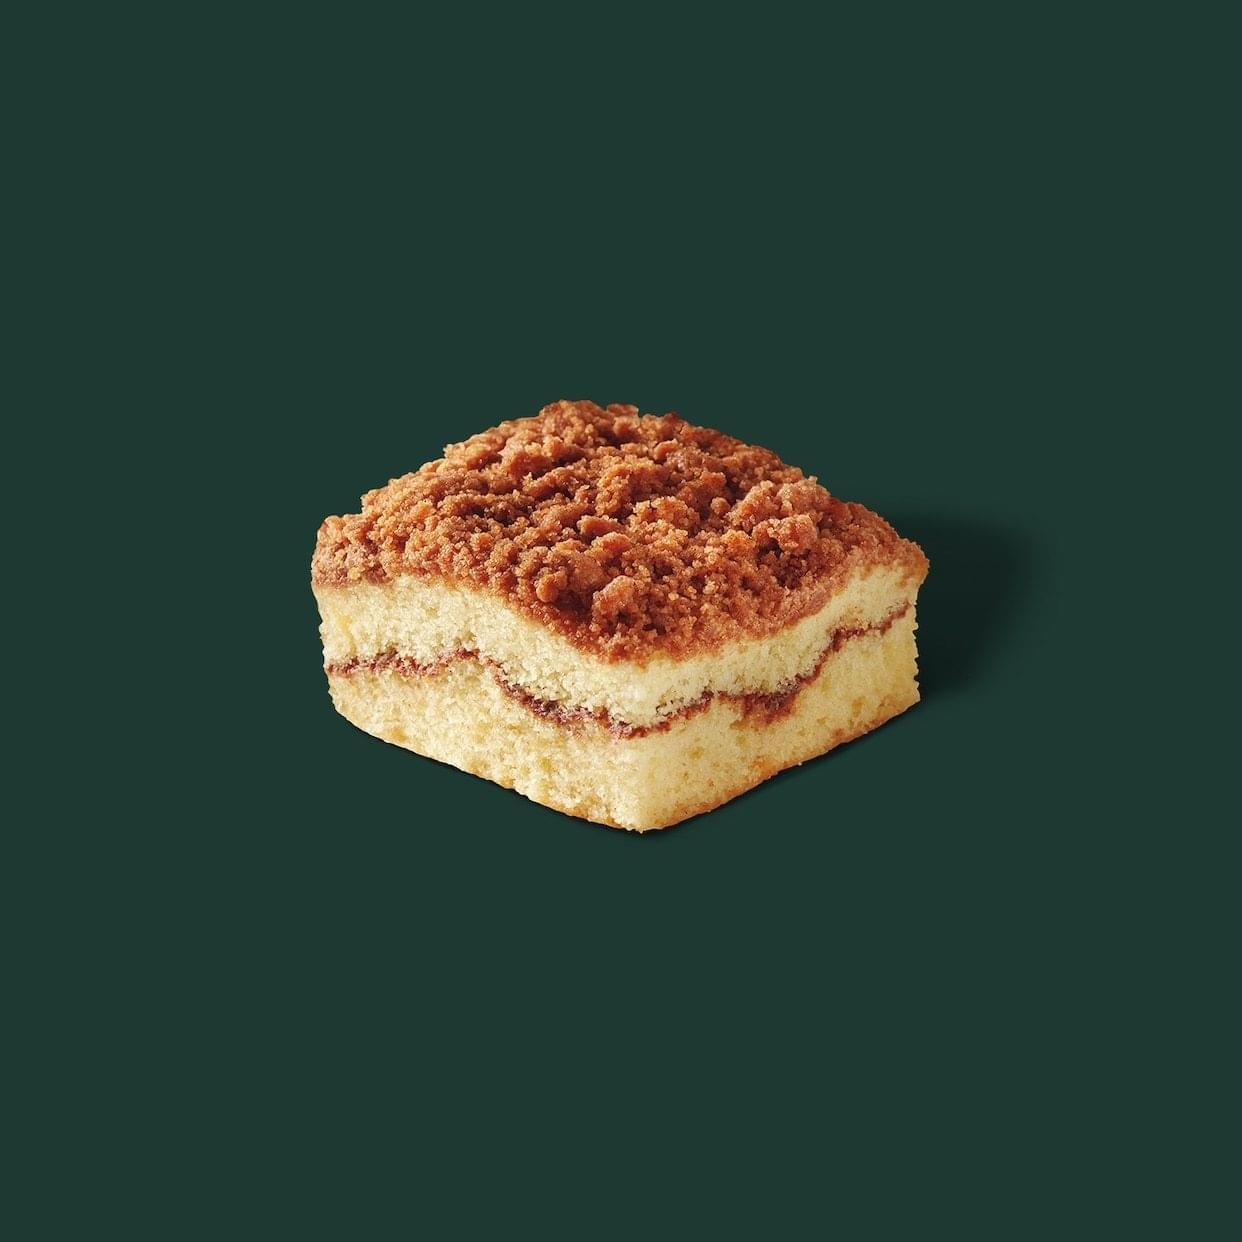 Starbucks Classic Coffee Cake Nutrition Facts